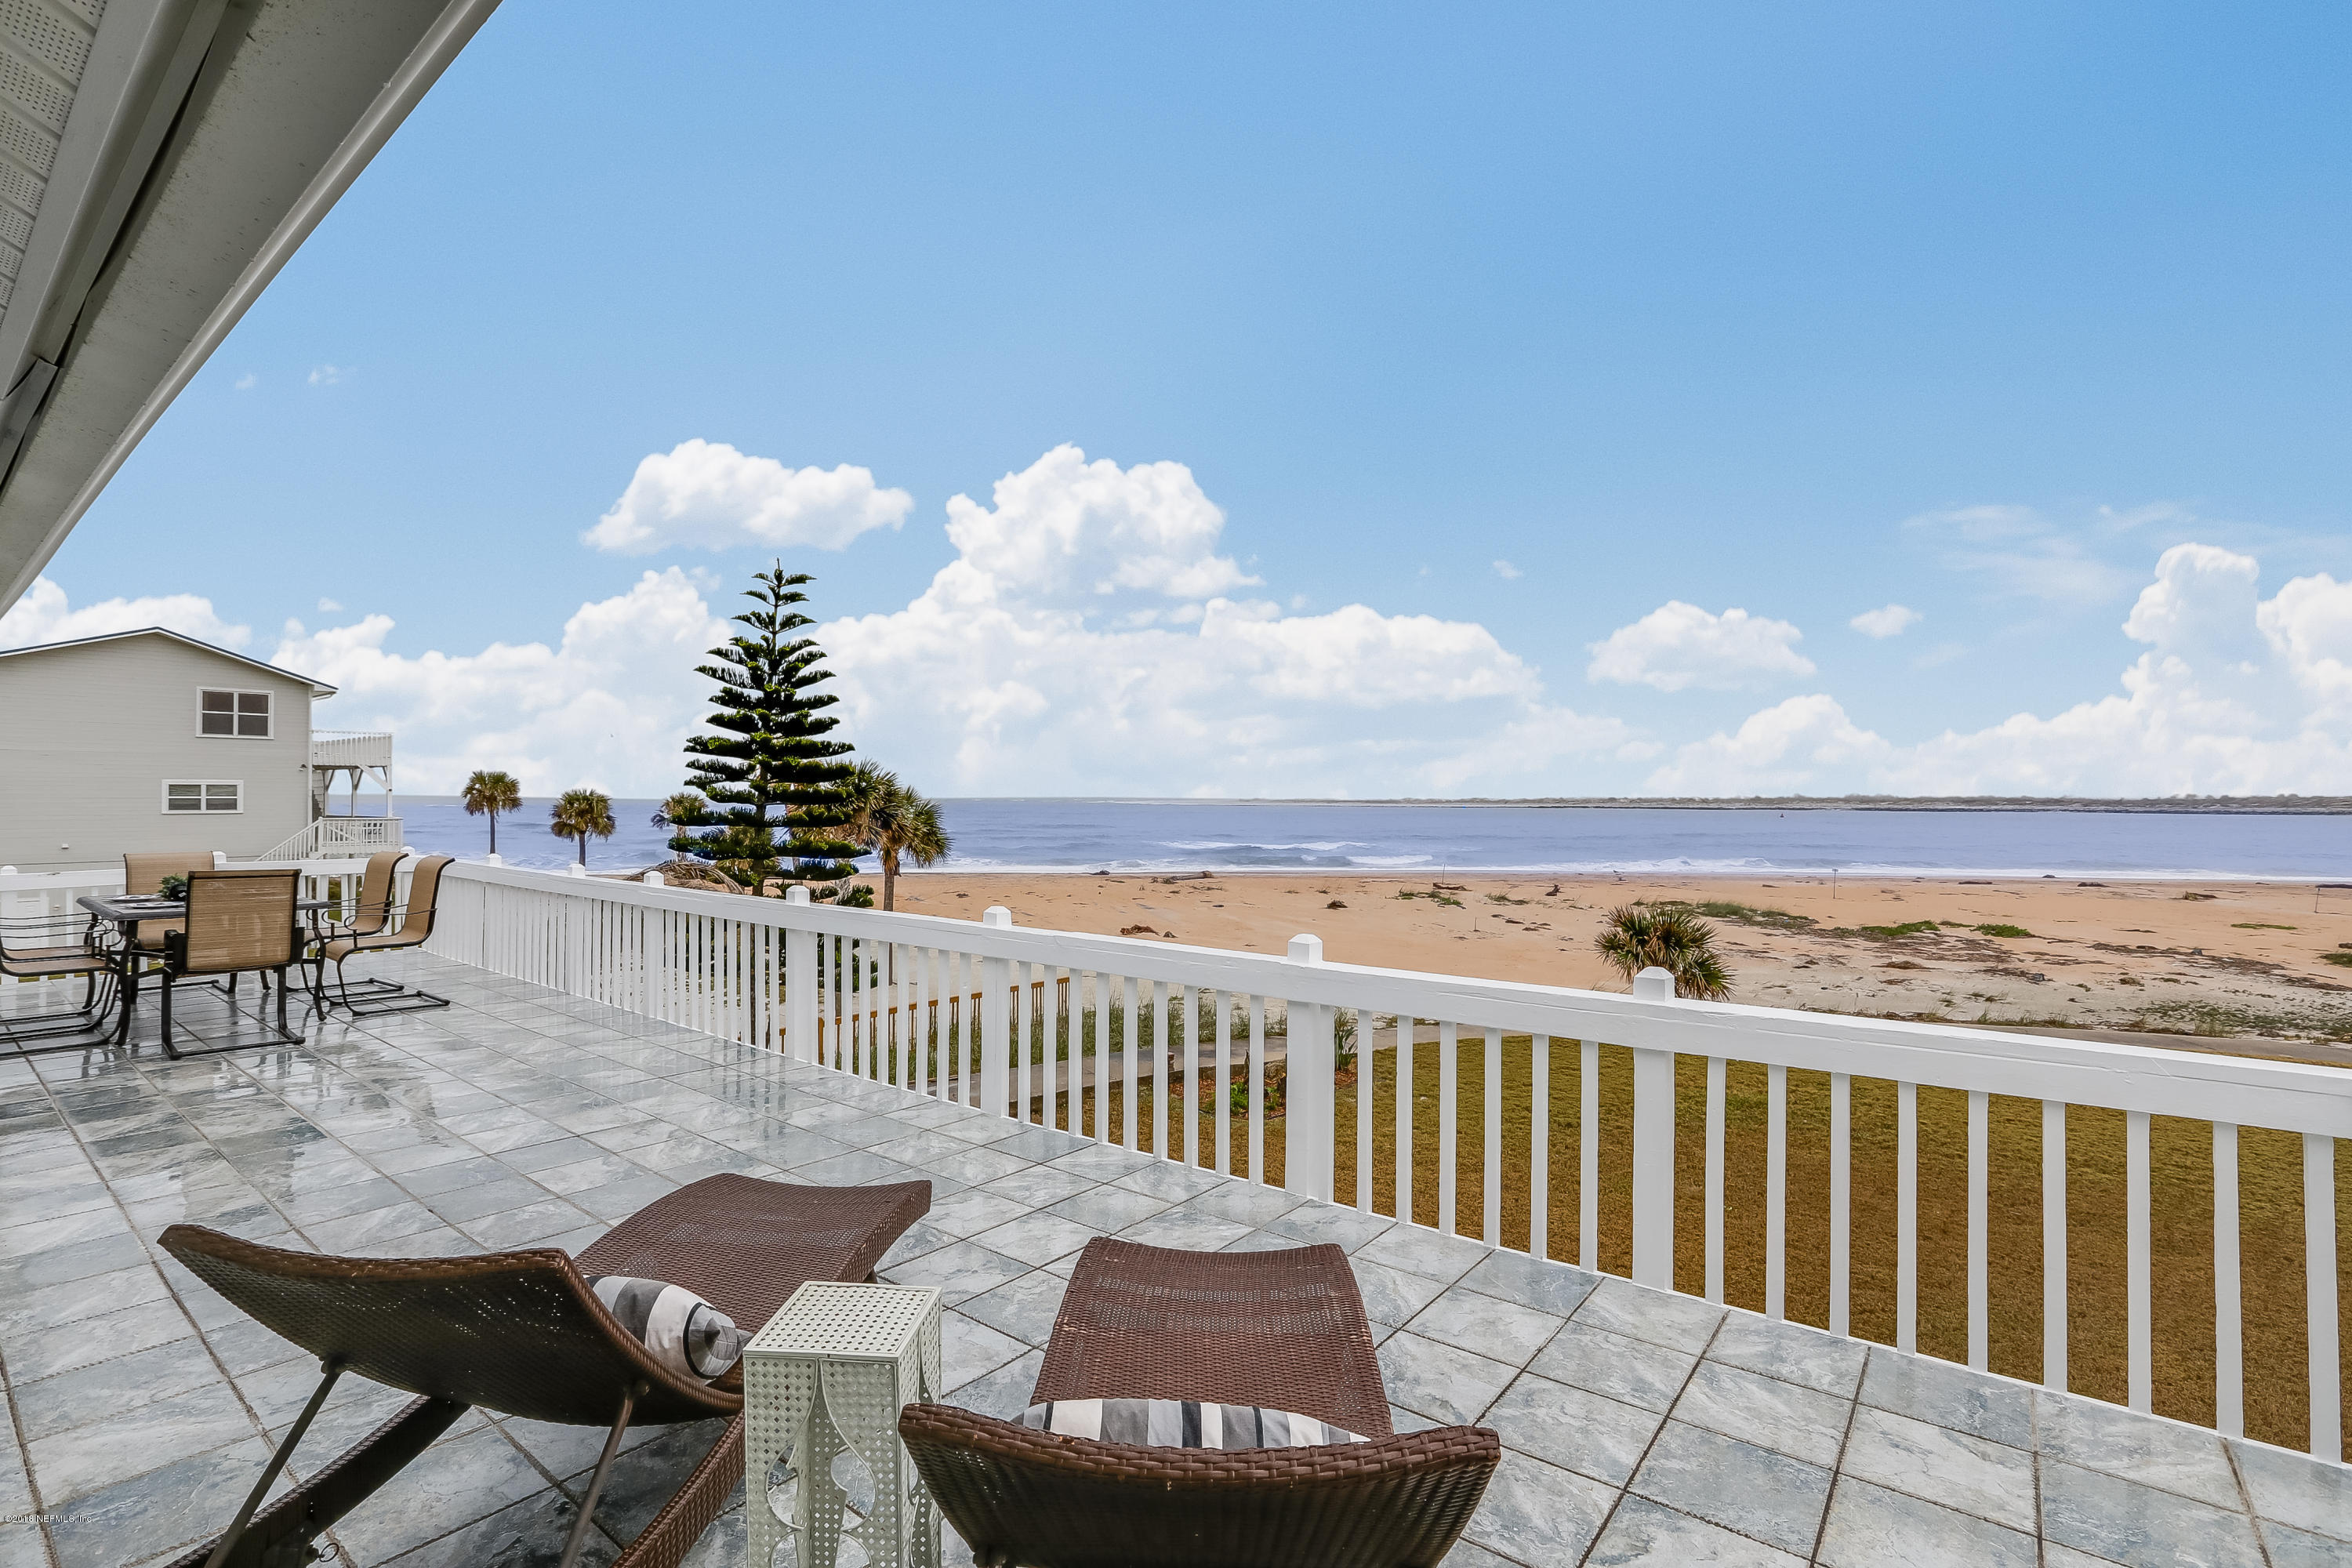 505 PORPOISE POINT, ST AUGUSTINE, FLORIDA 32084, 5 Bedrooms Bedrooms, ,3 BathroomsBathrooms,Residential - single family,For sale,PORPOISE POINT,915061